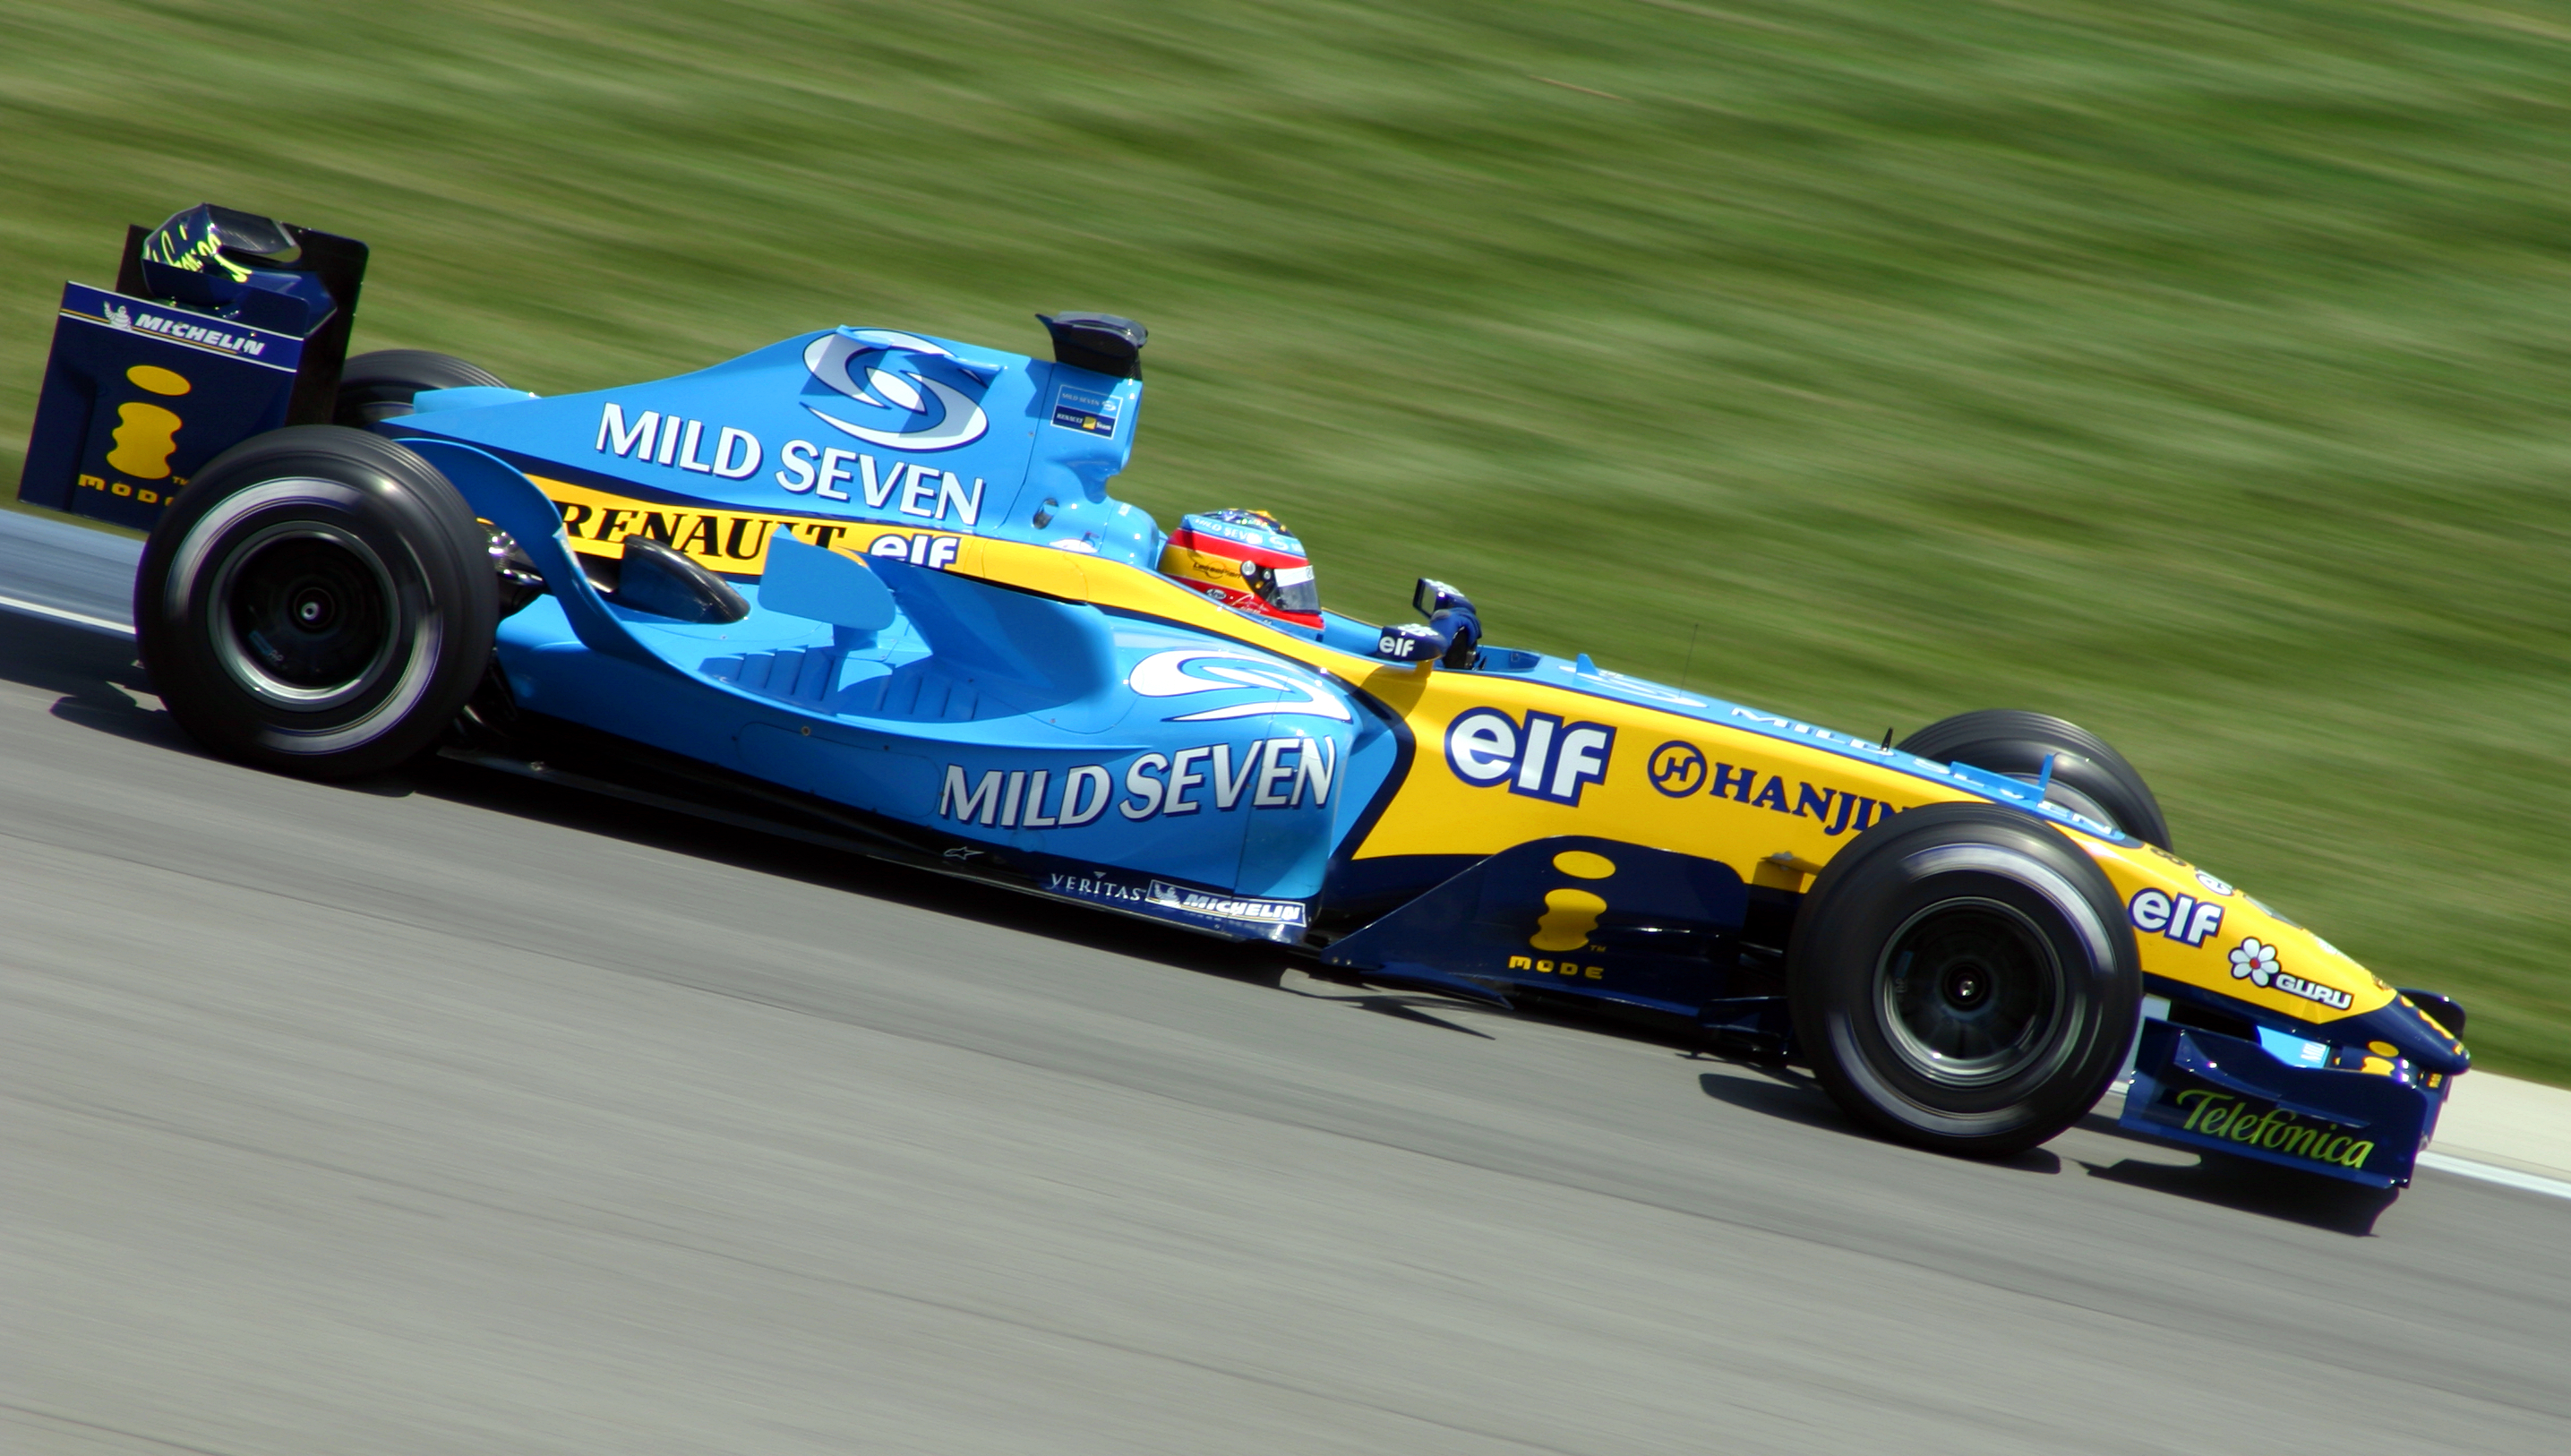 Alonso US-GP 2004